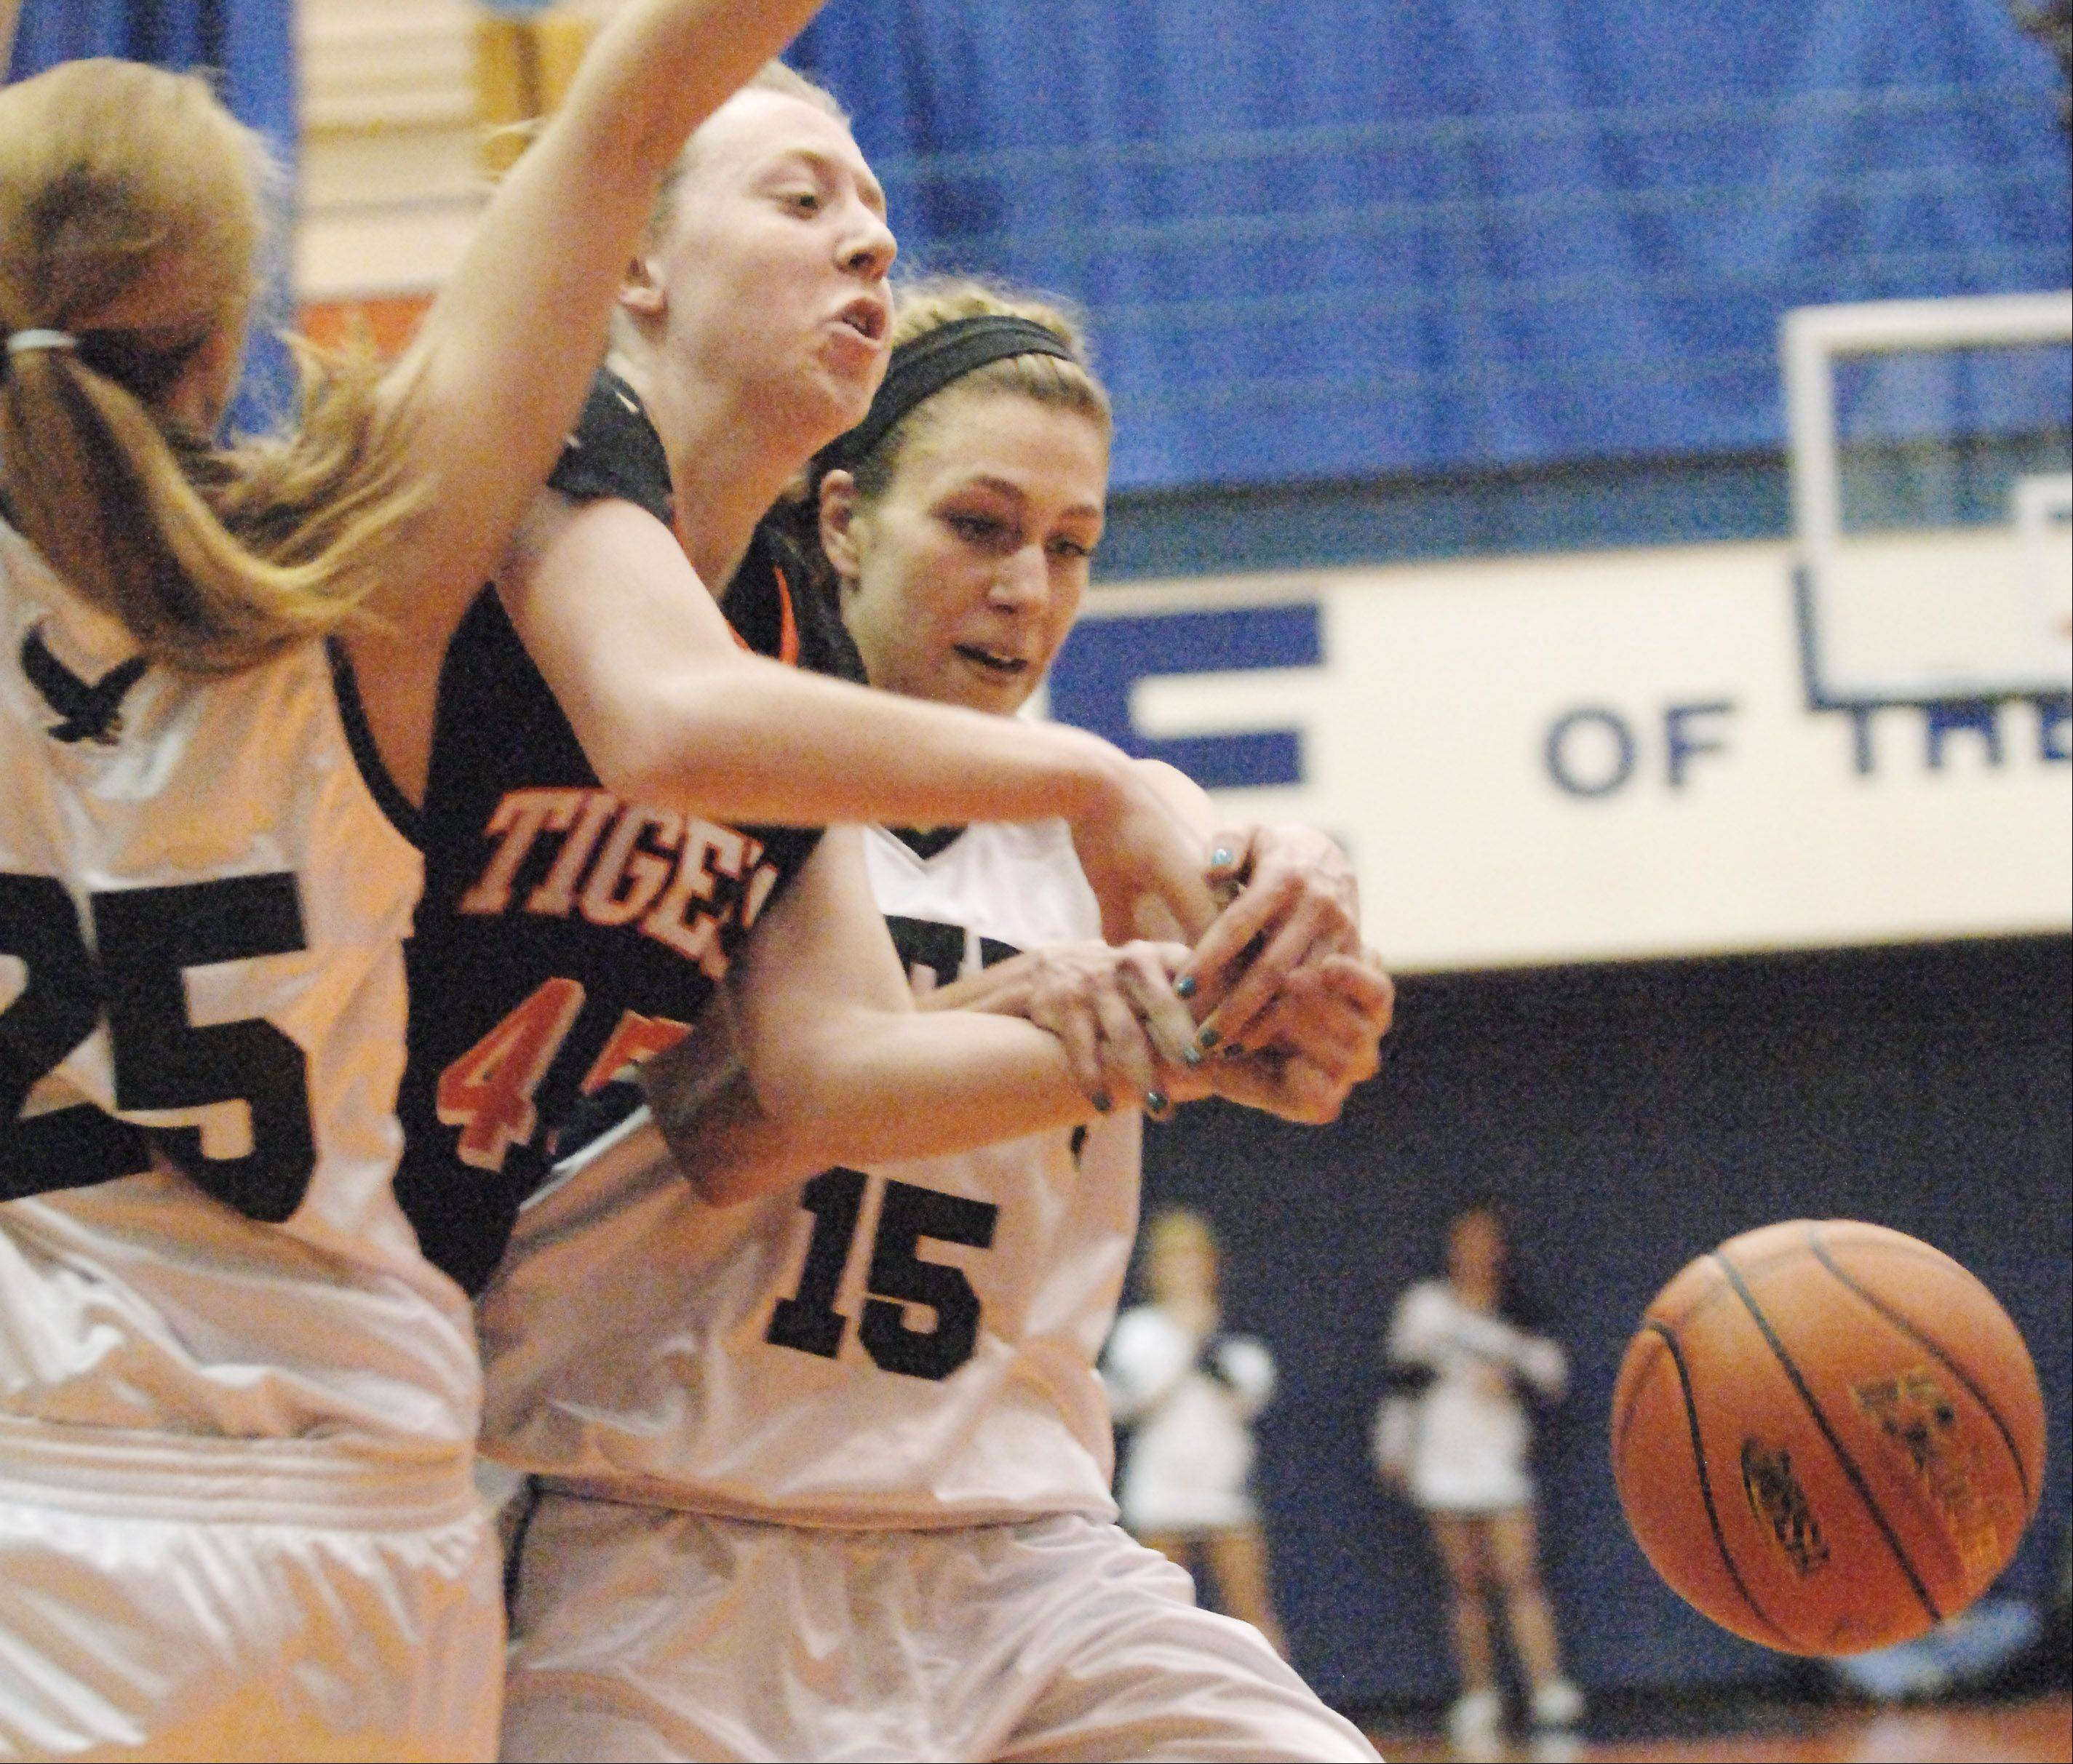 Wheaton Warrenville South's Meghan Waldron loses the ball out-of-bounds as she is guarded by Bartlett's Kristin Conniff and Katie Gutzwiller, right.